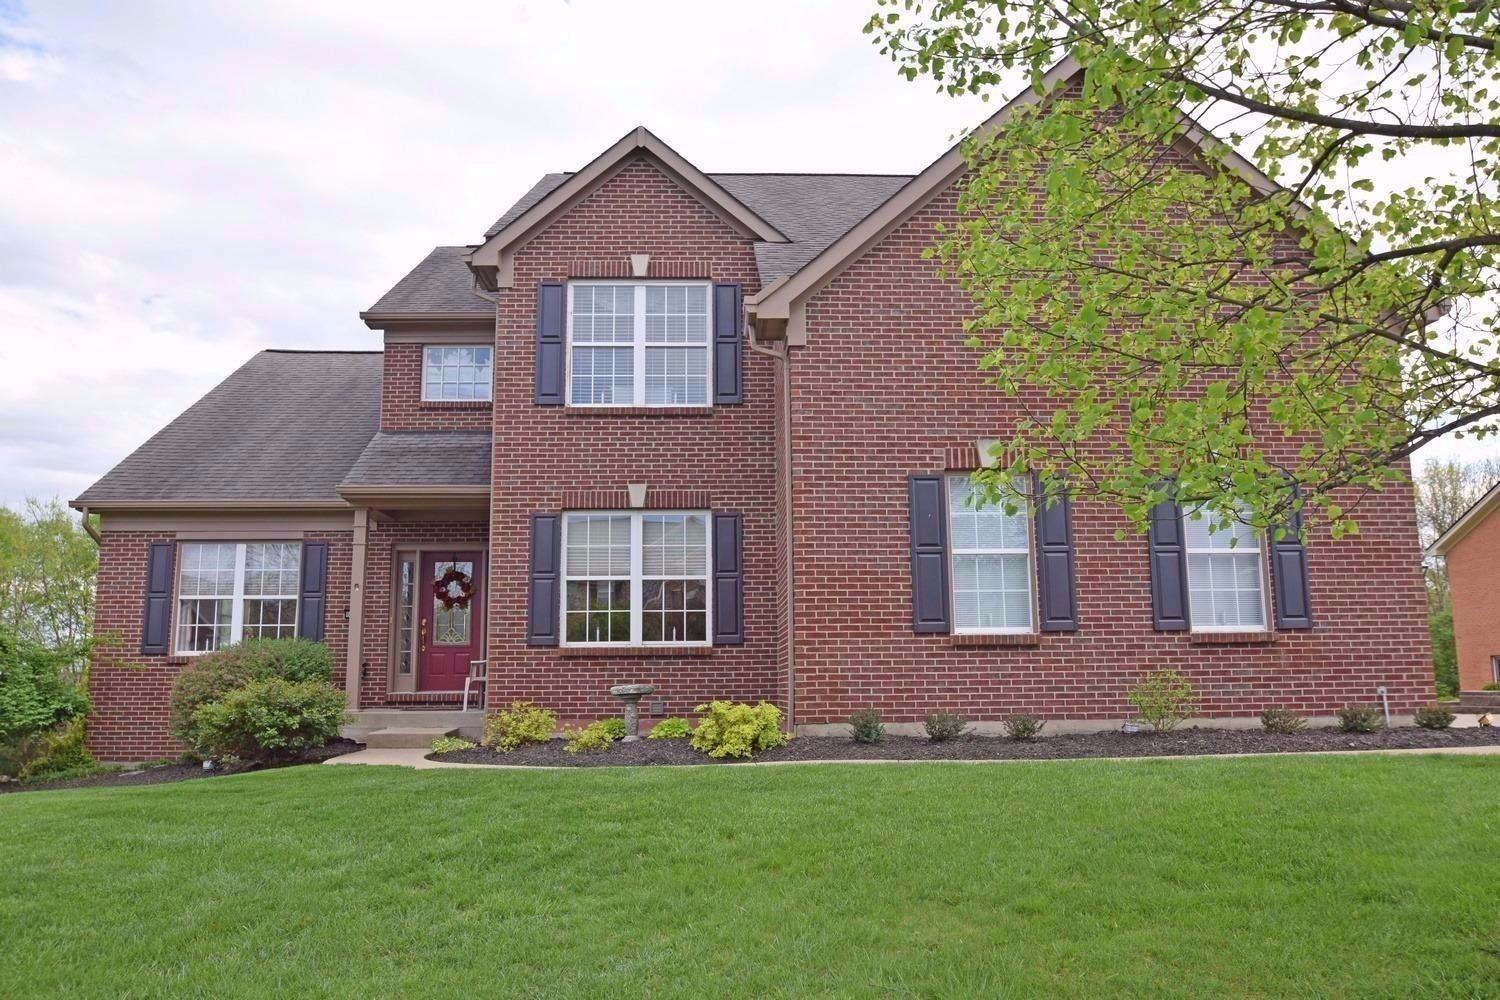 6195 Chappellfield Dr West Chester - West, OH